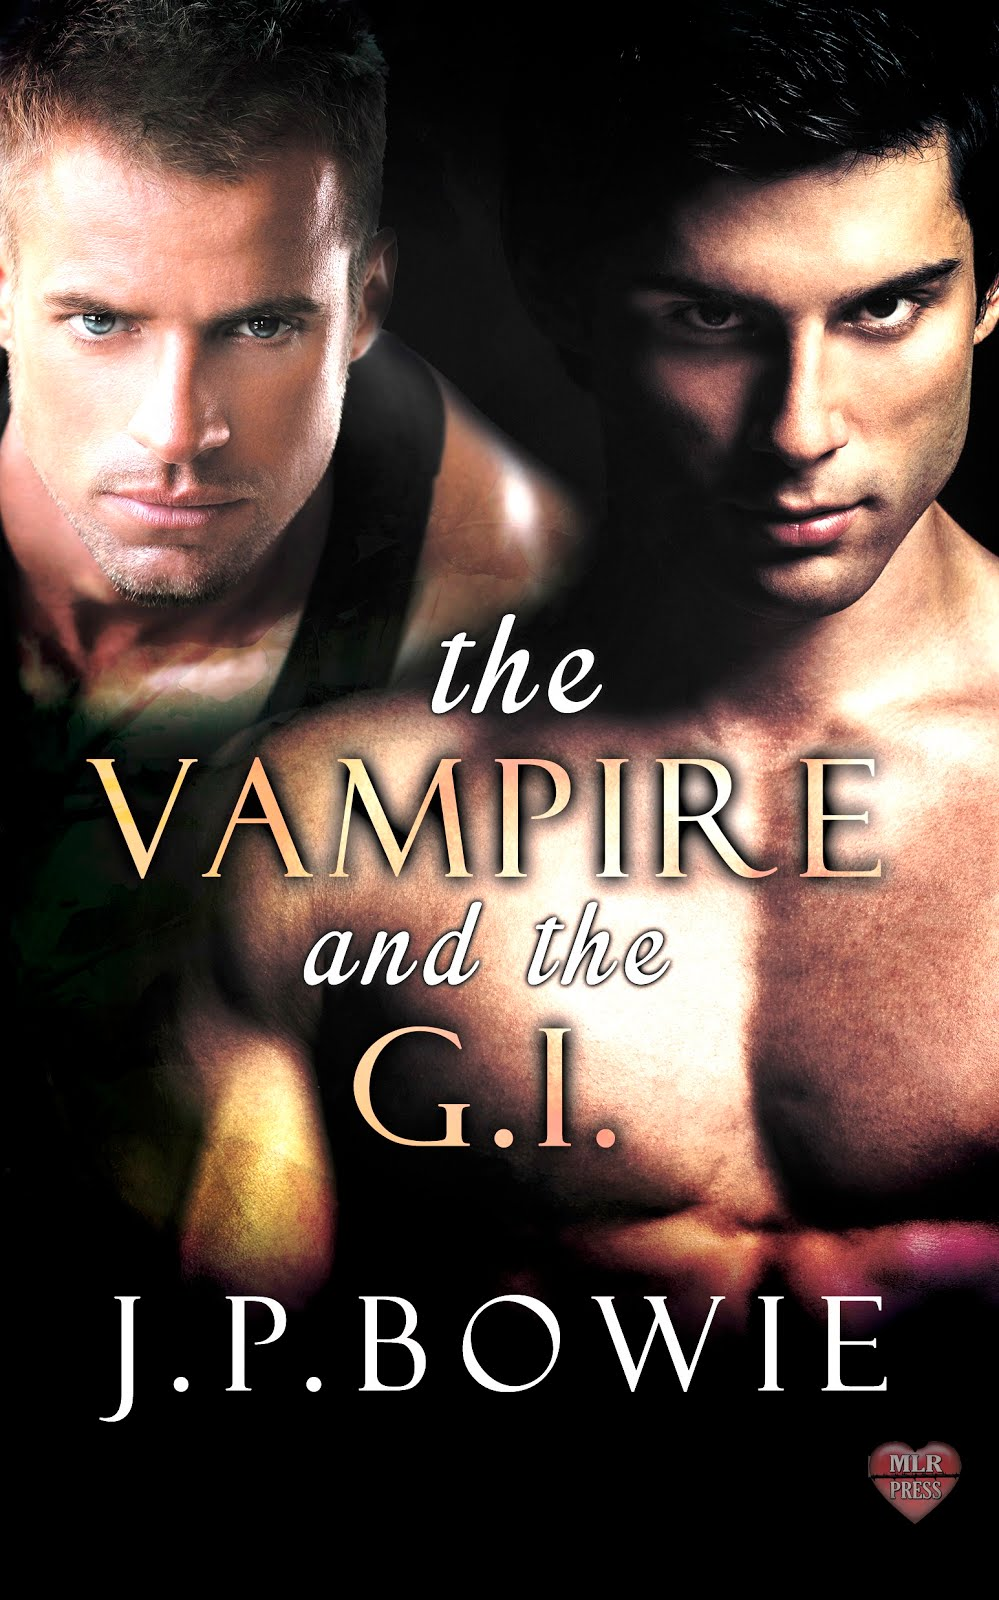 The Vampire and the G.I.